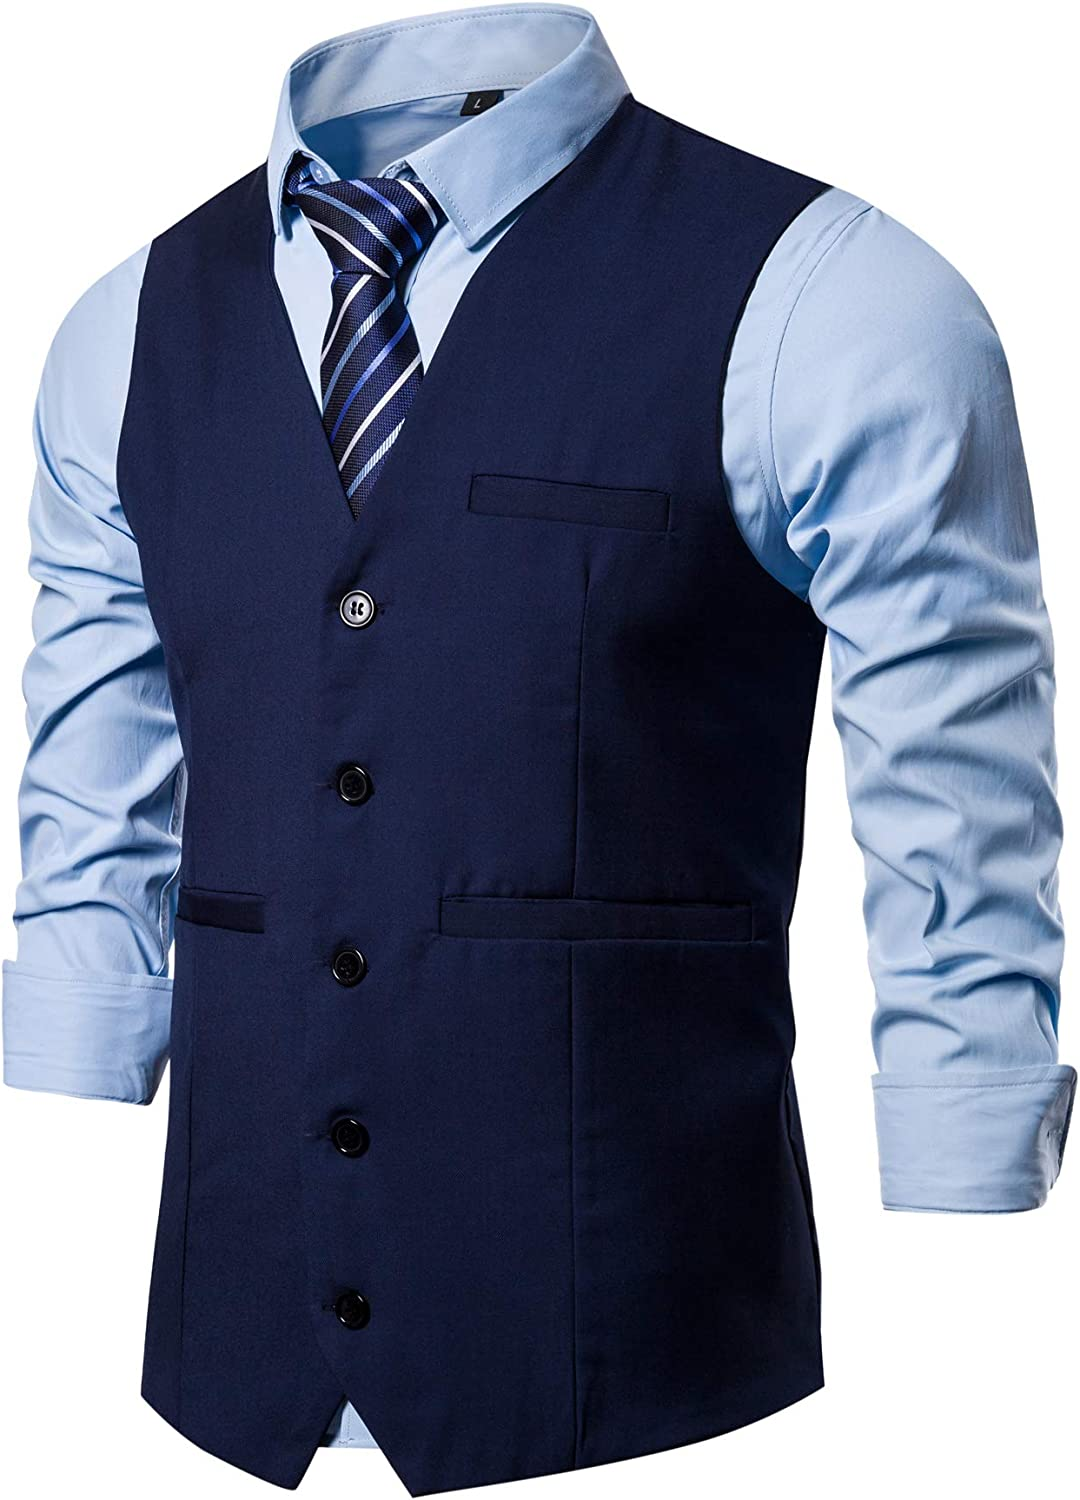 DONGD Mens Formal Suit Colorado Springs Mall Vest Tuxe for Today's only or Dress Business